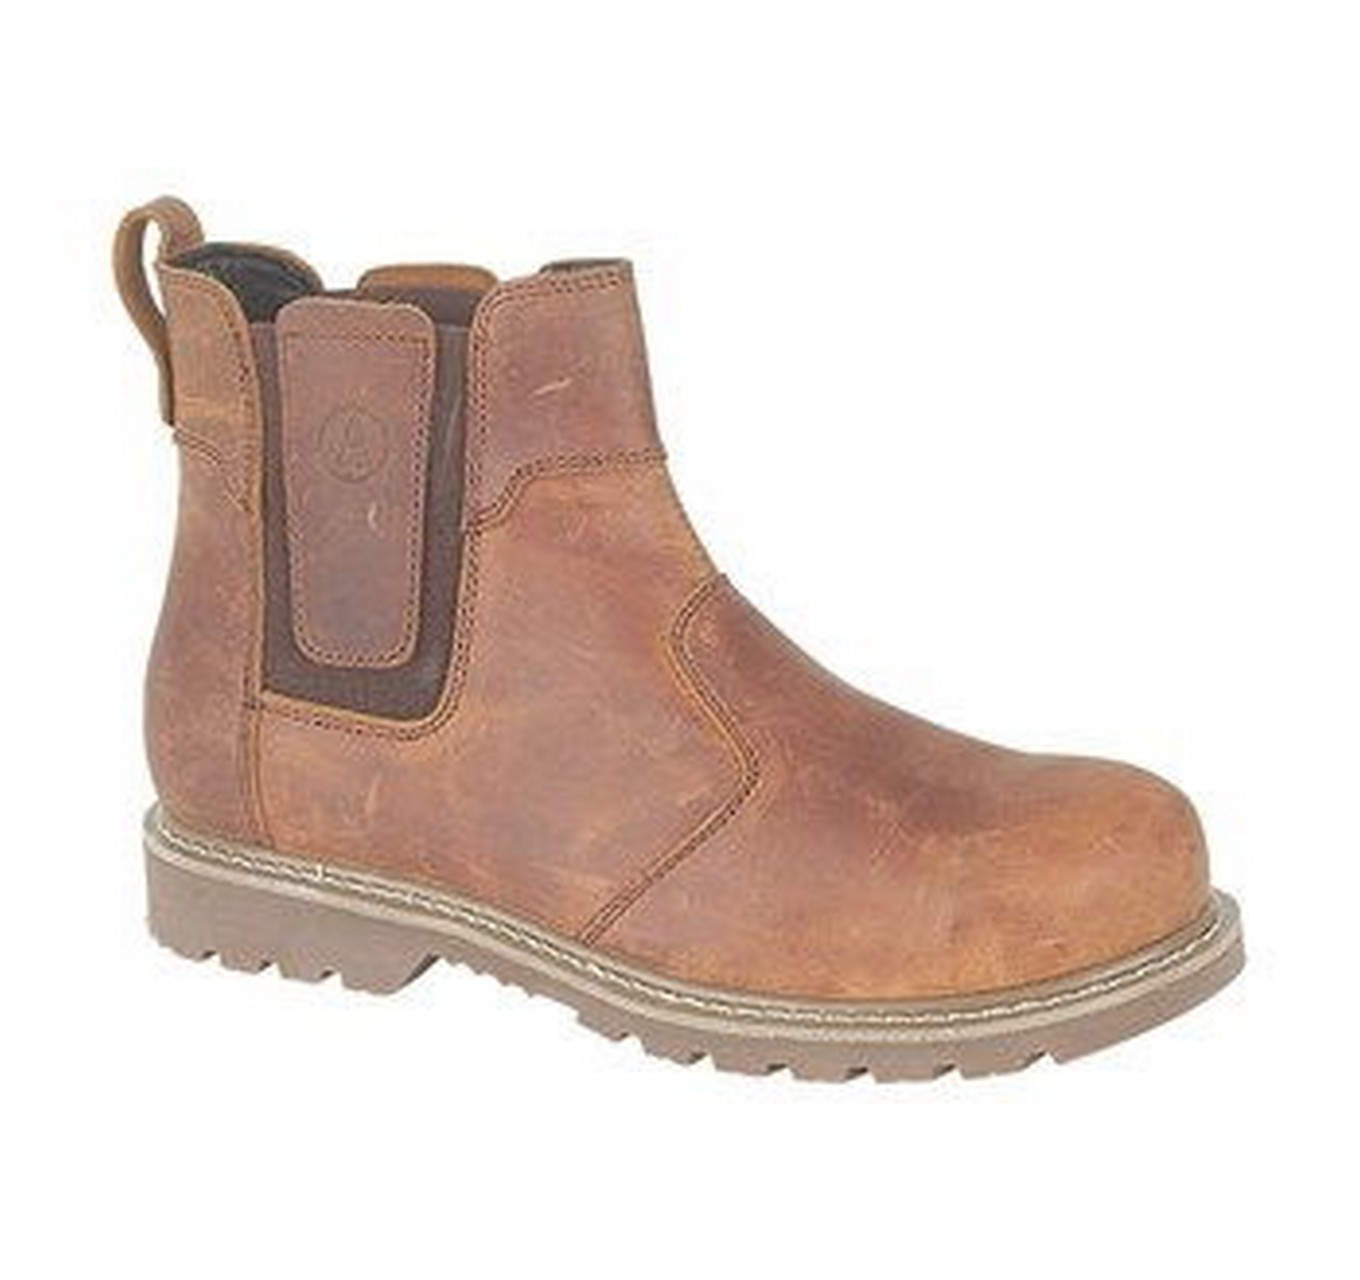 Abingdon Dealer Boot Brown 6